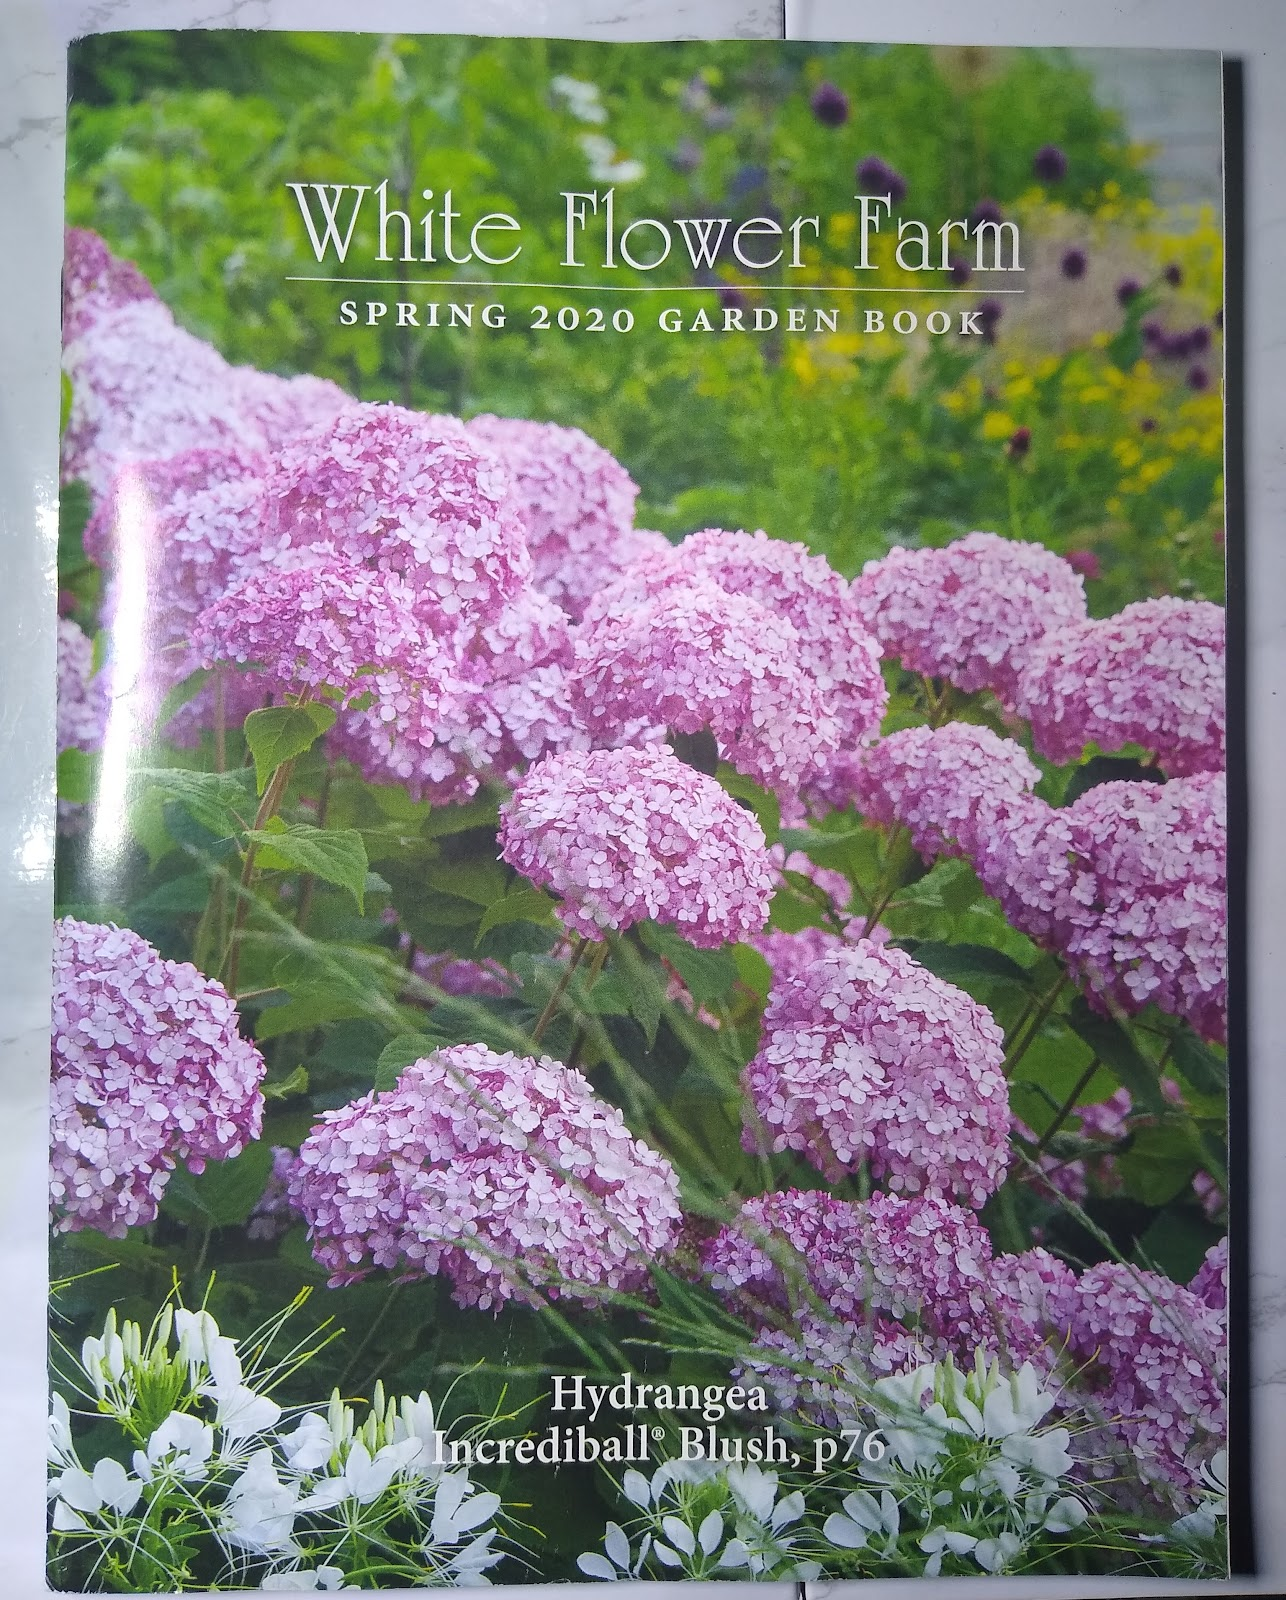 White Flower Farm catalog picture